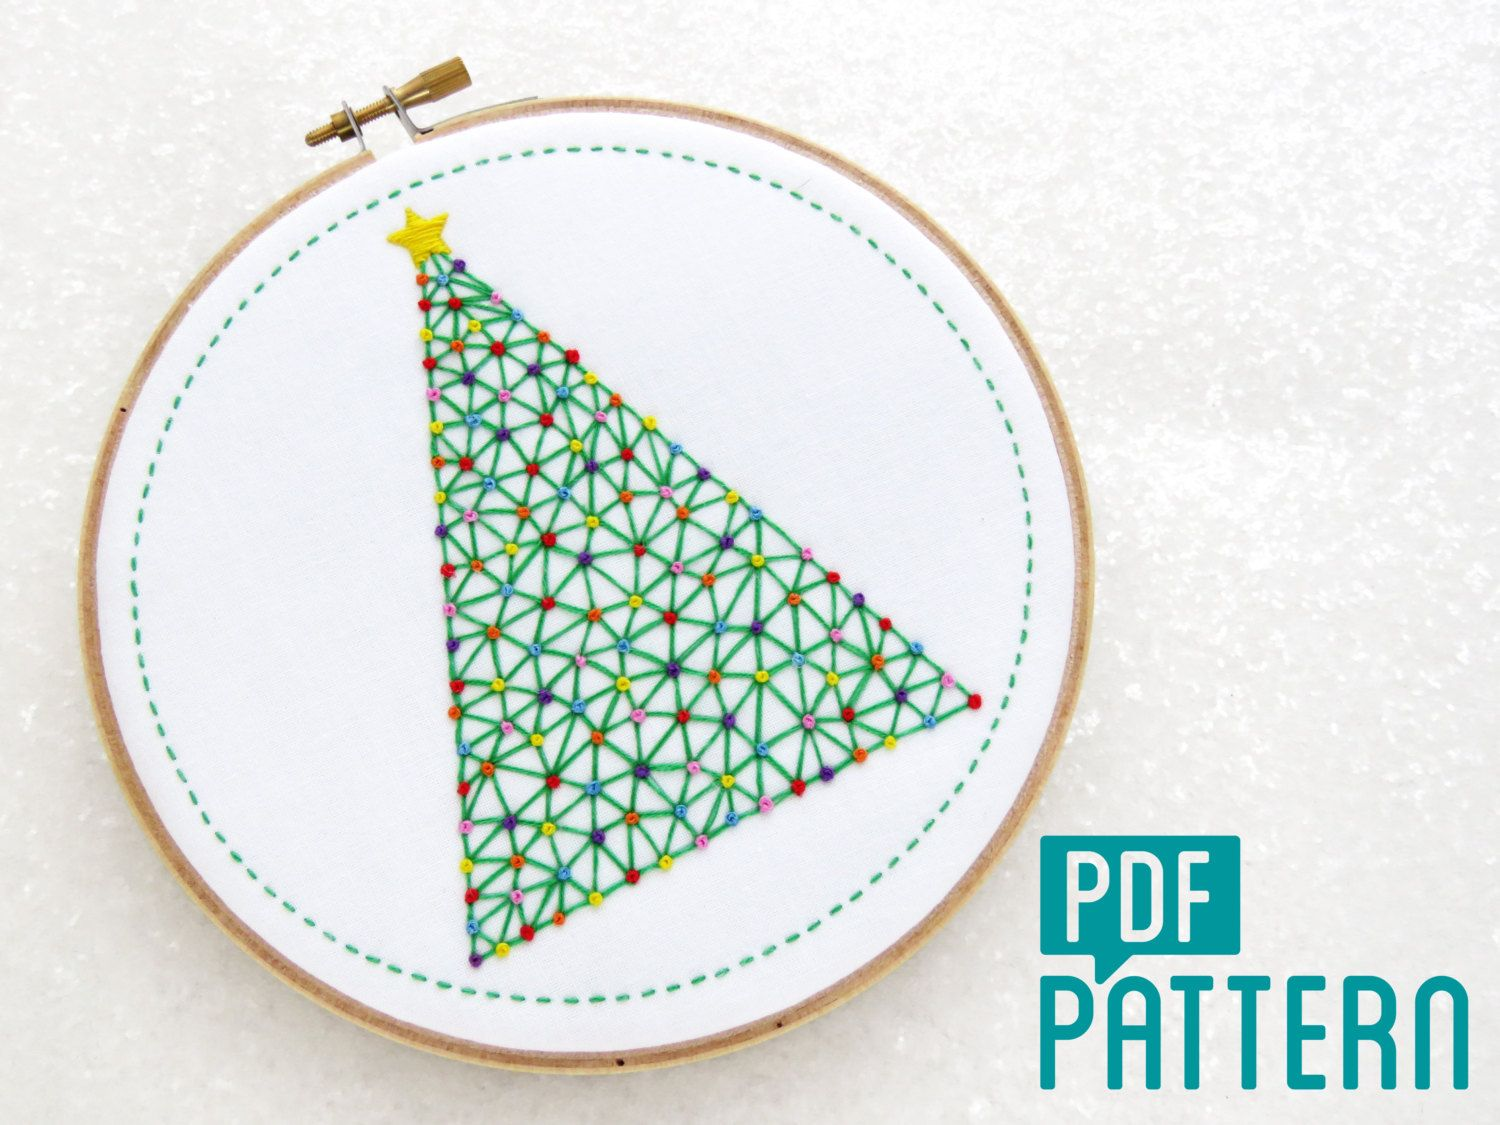 Christmas tree embroidery pattern xmas tree hoop art pattern christmas tree embroidery pattern xmas tree hoop art pattern download geometric needlecraft festive embroidery pdf modern needlework bankloansurffo Choice Image